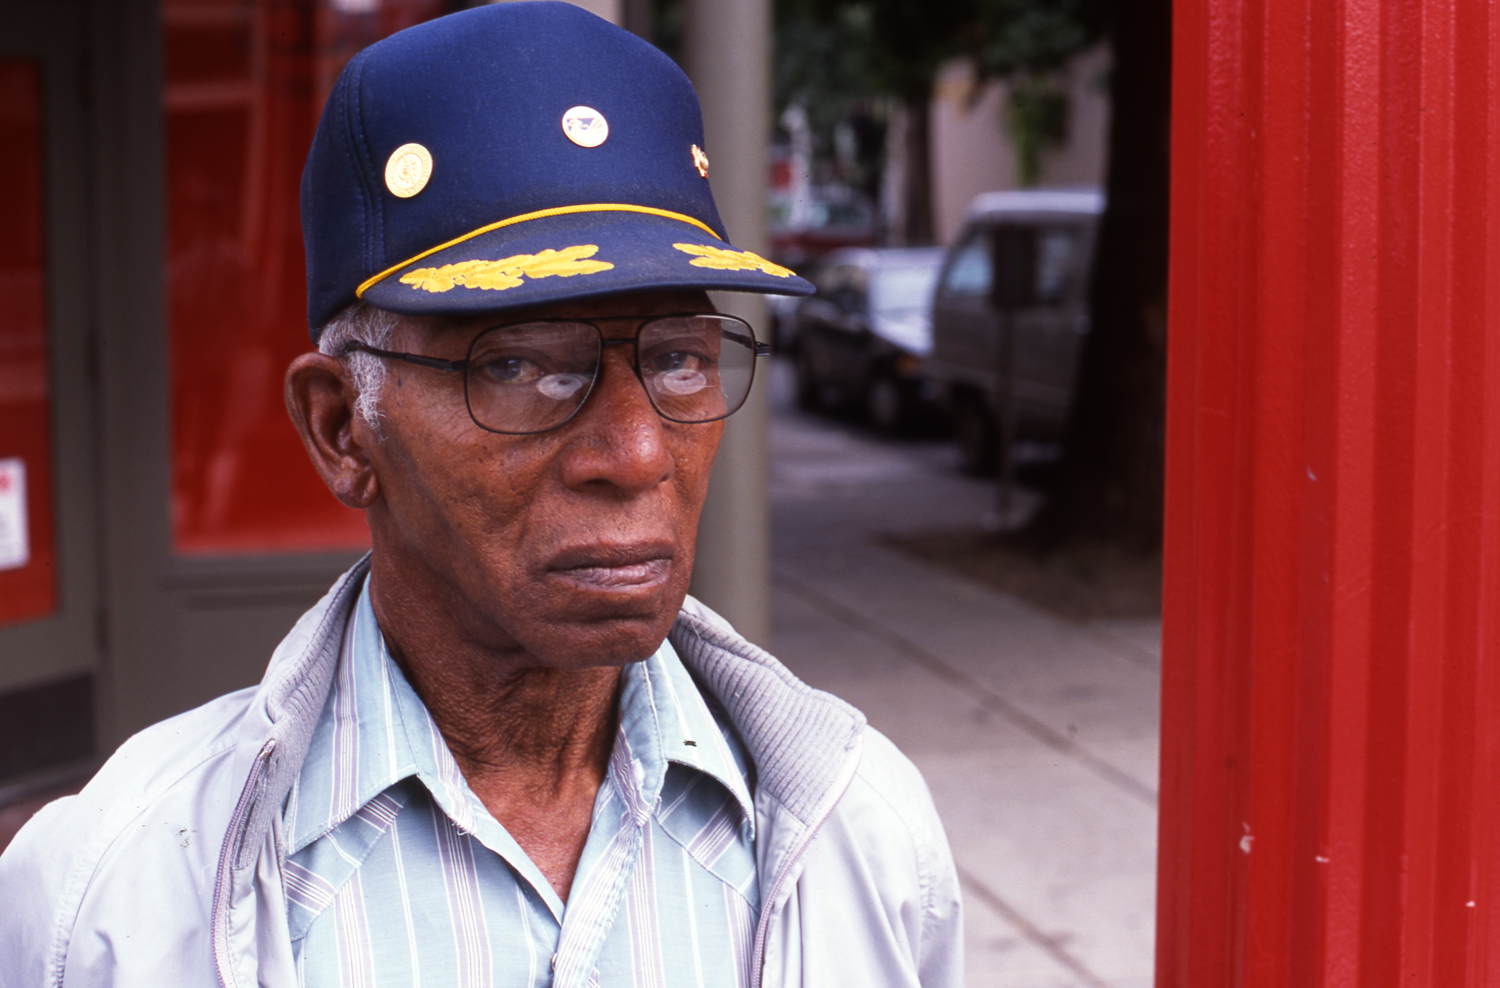 Black Man with baseball cap